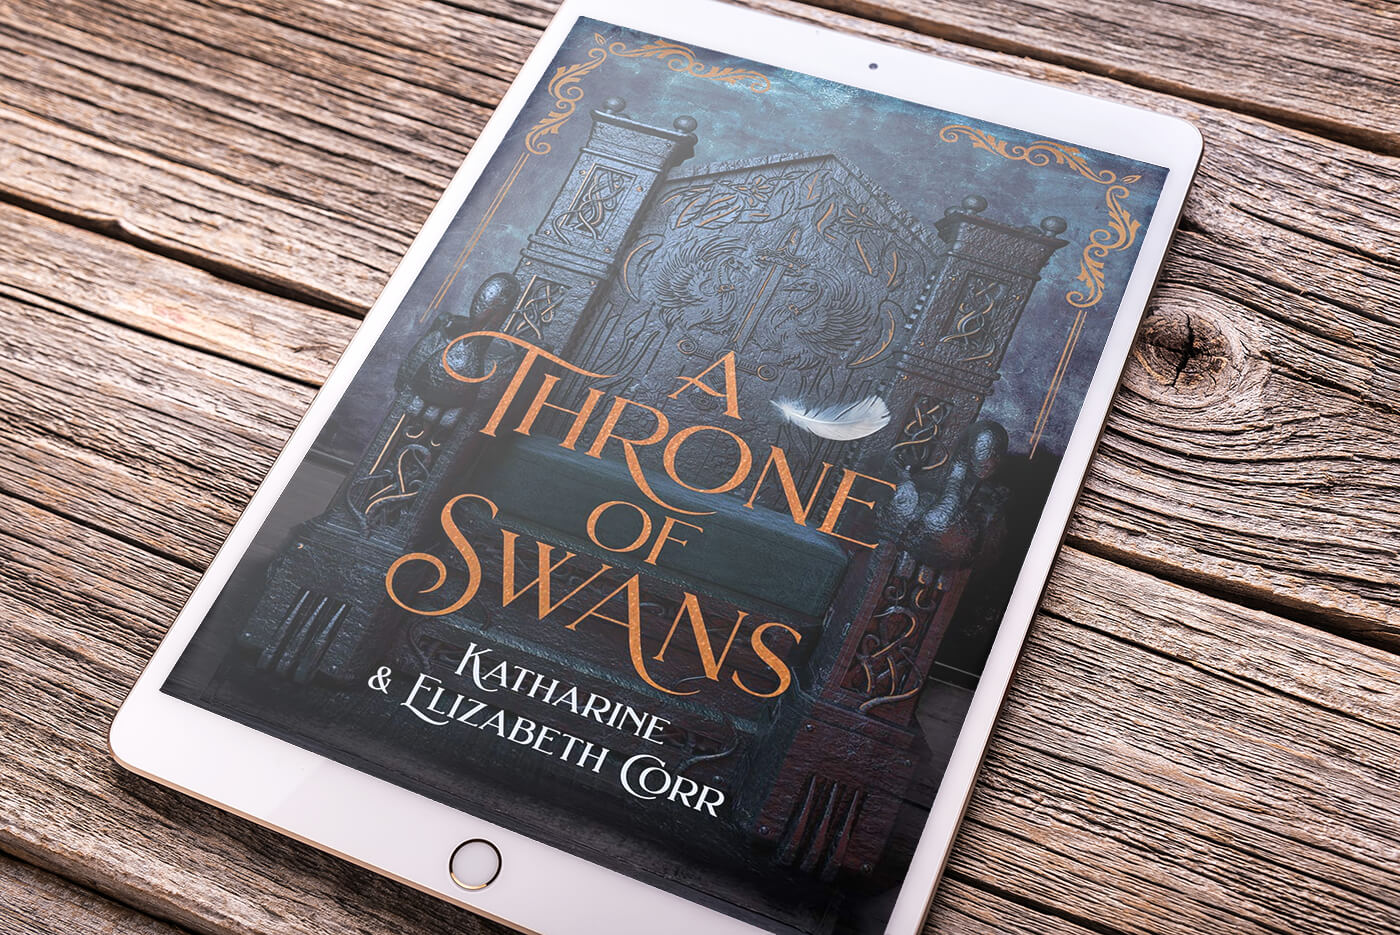 A Throne of Swans by Katharine and Elizabeth Corr book cover